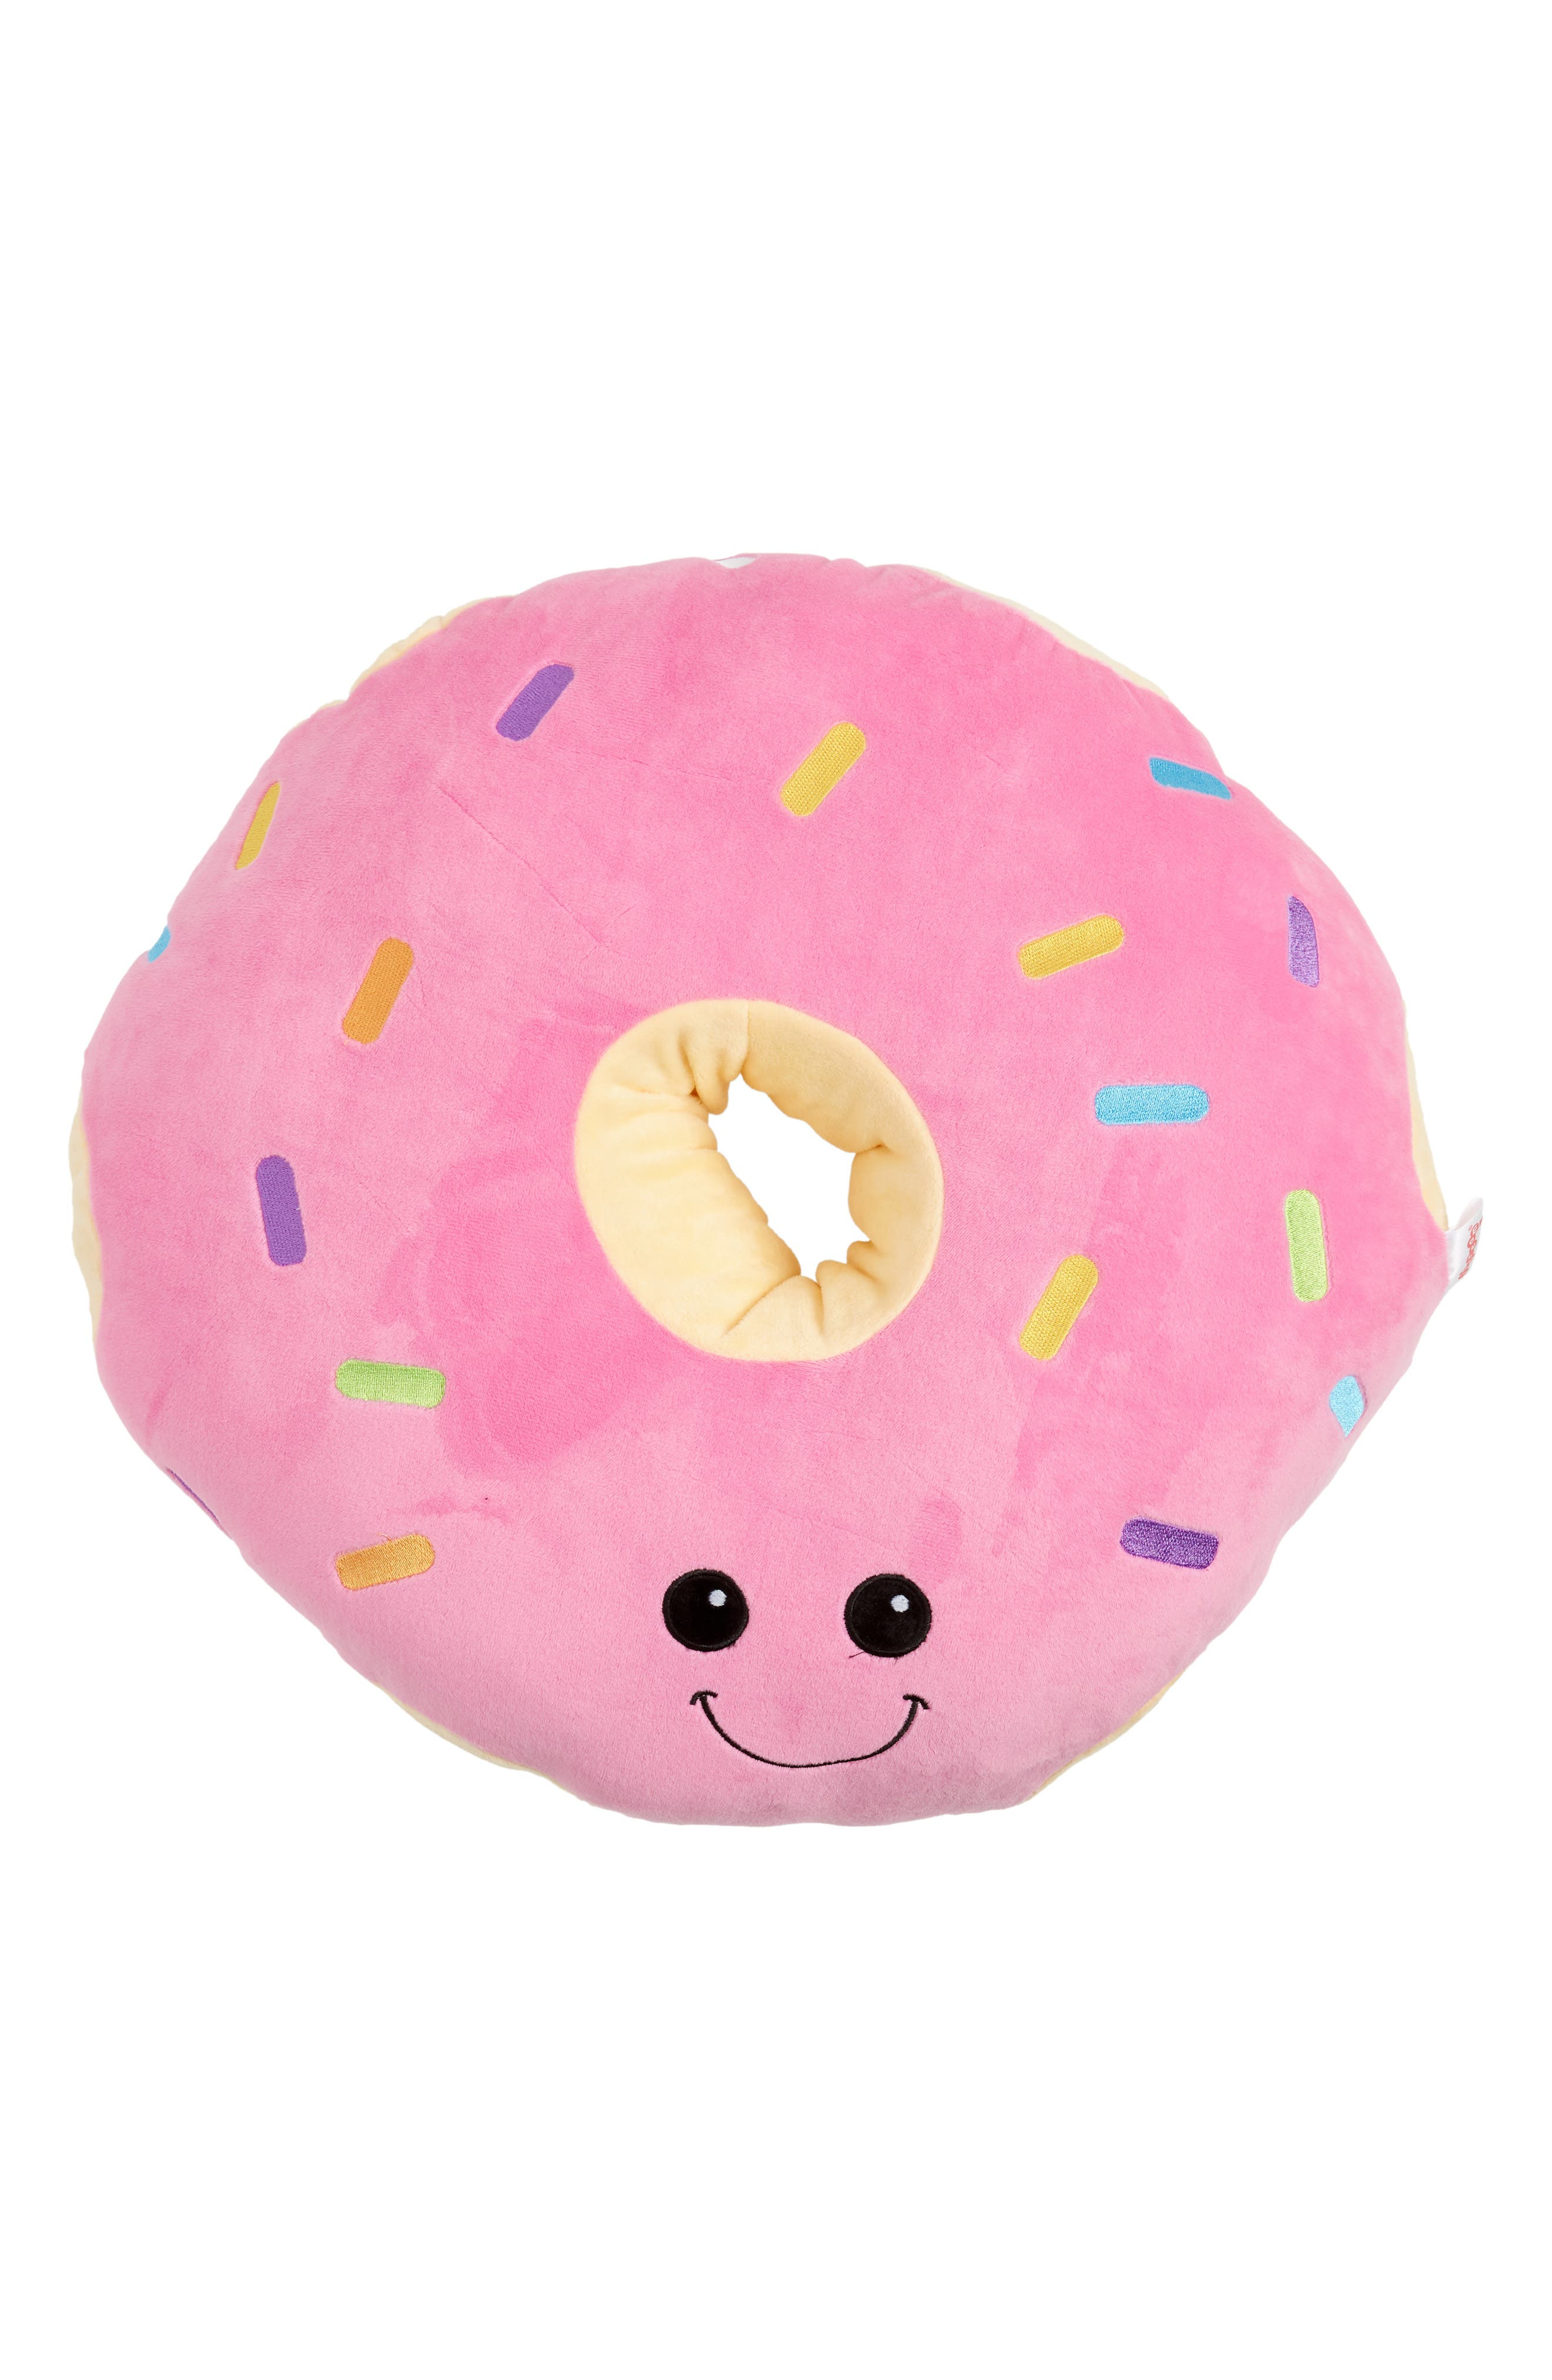 Scented Sprinkle Donut Pillow,                         Main,                         color, 652